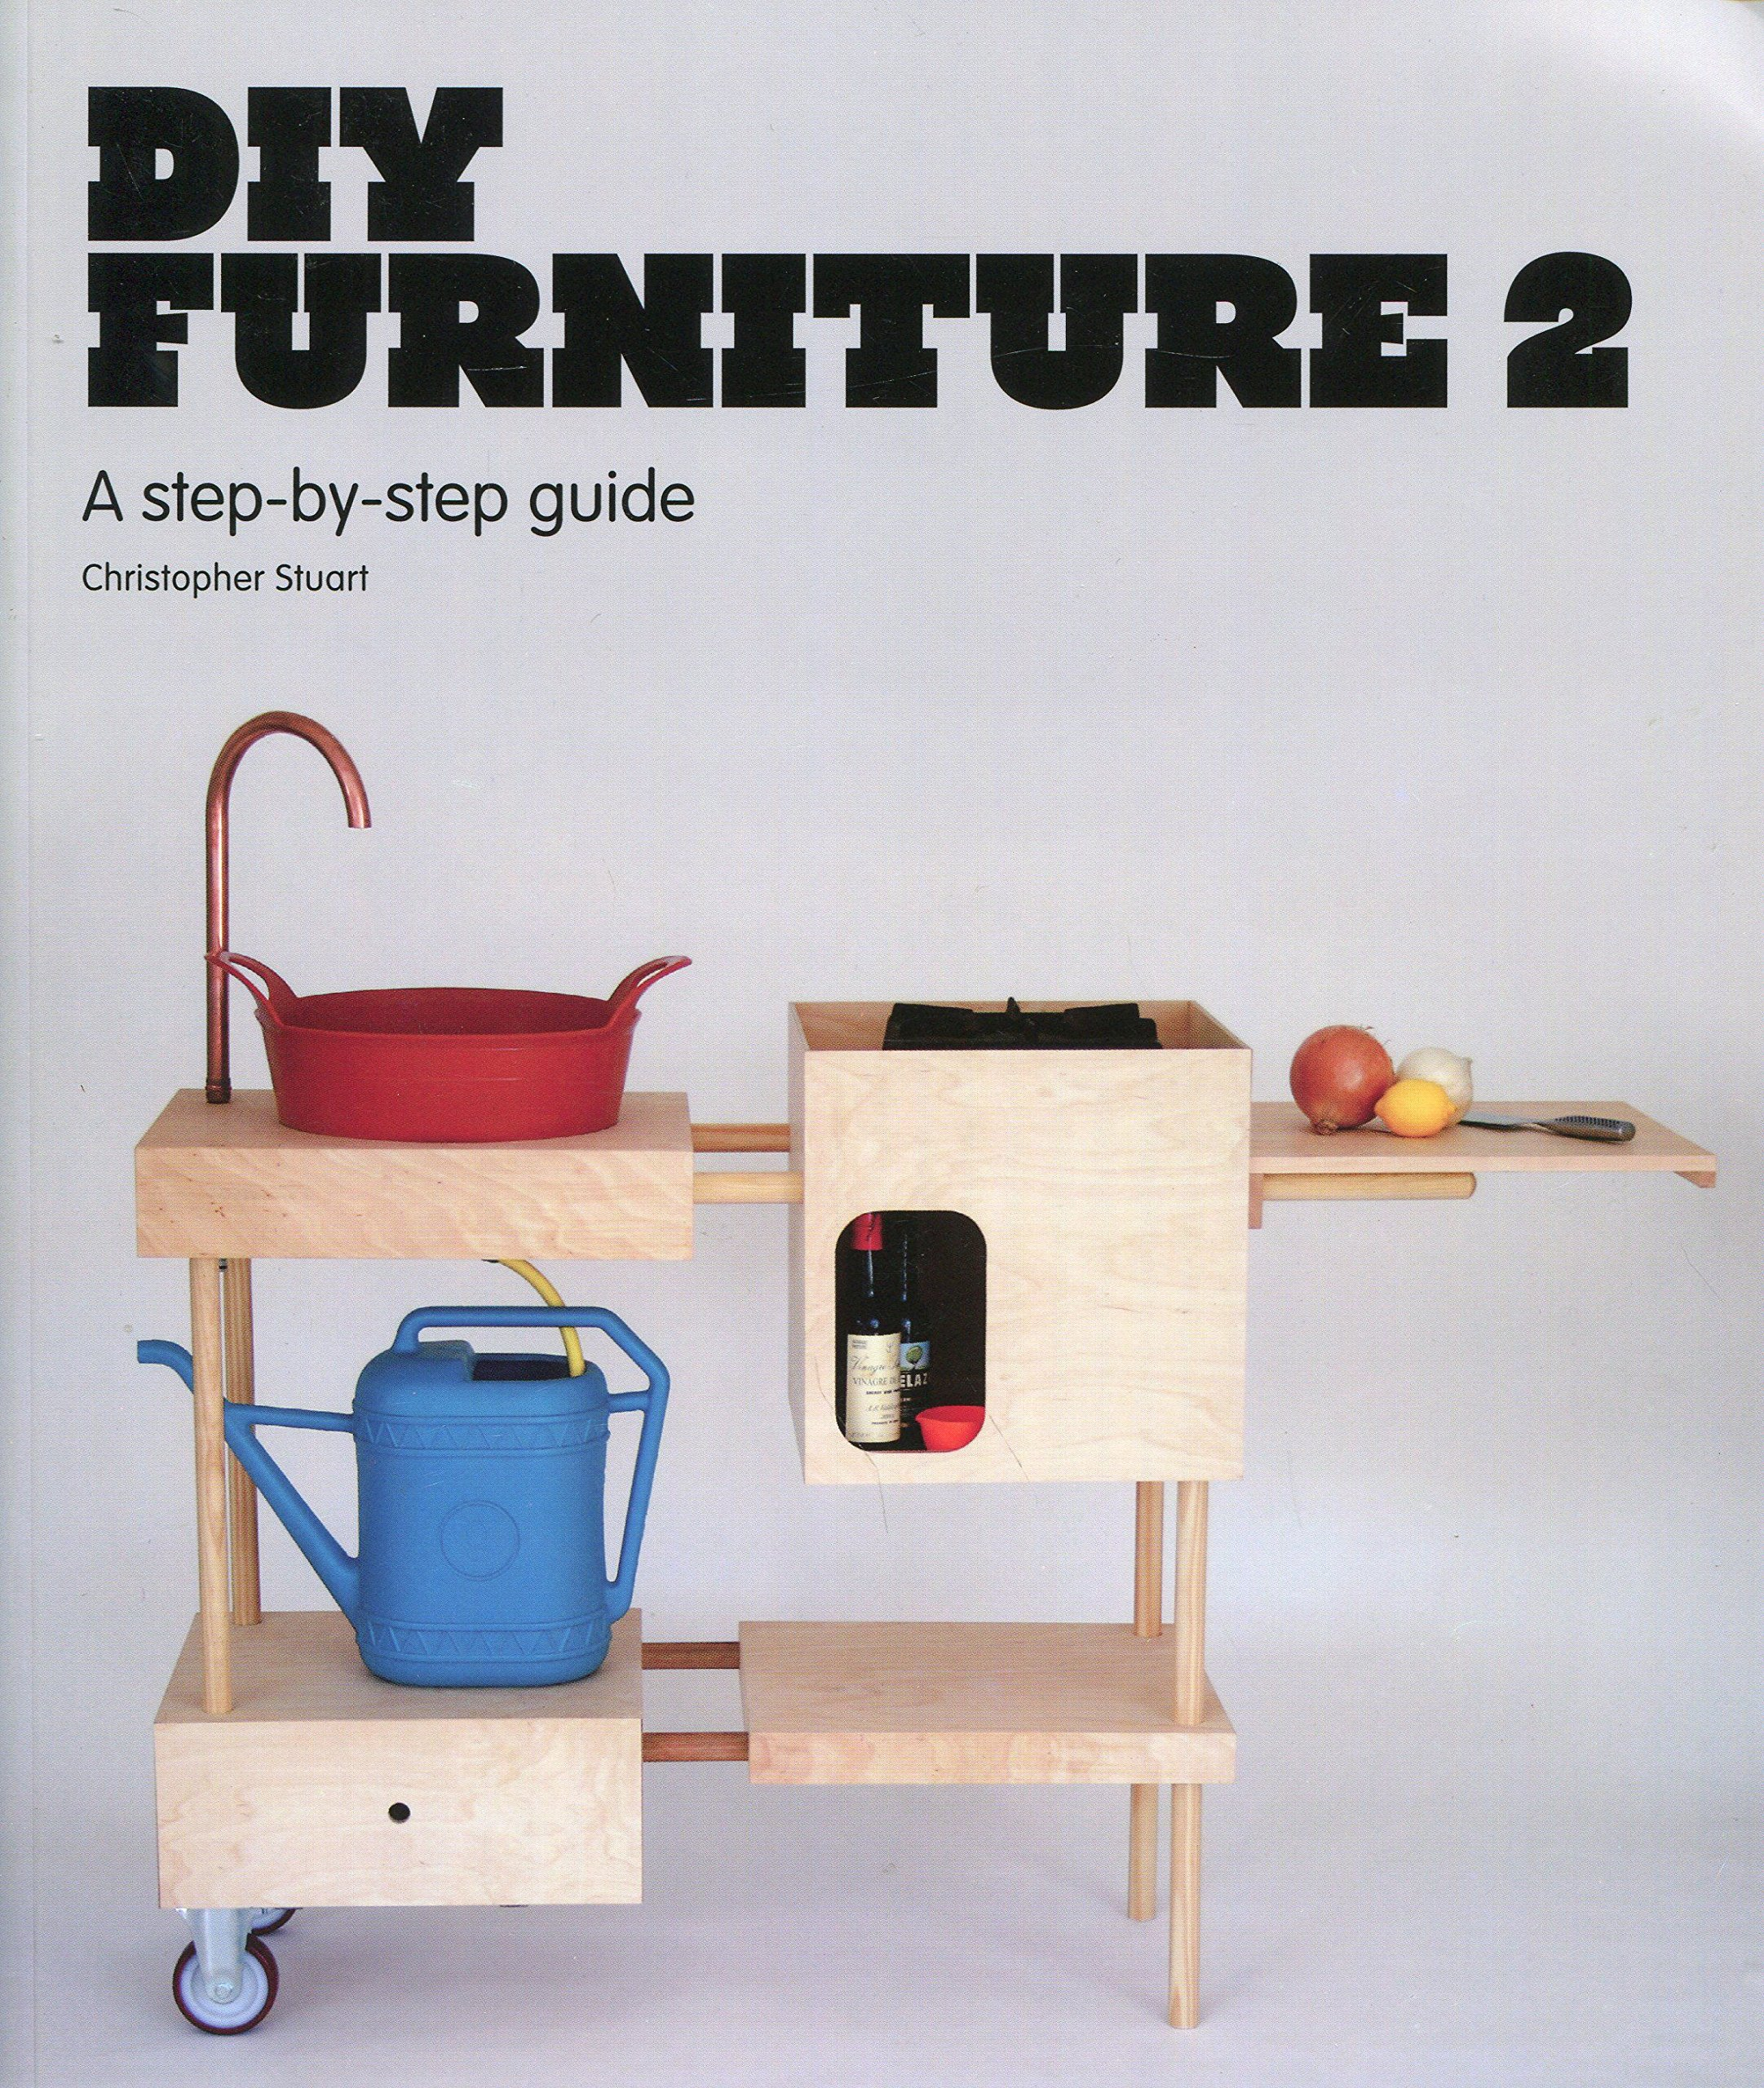 Diy designer furniture Amazon Follow The Author Youtube Diy Furniture 2 Stepbystep Guide Christopher Stuart